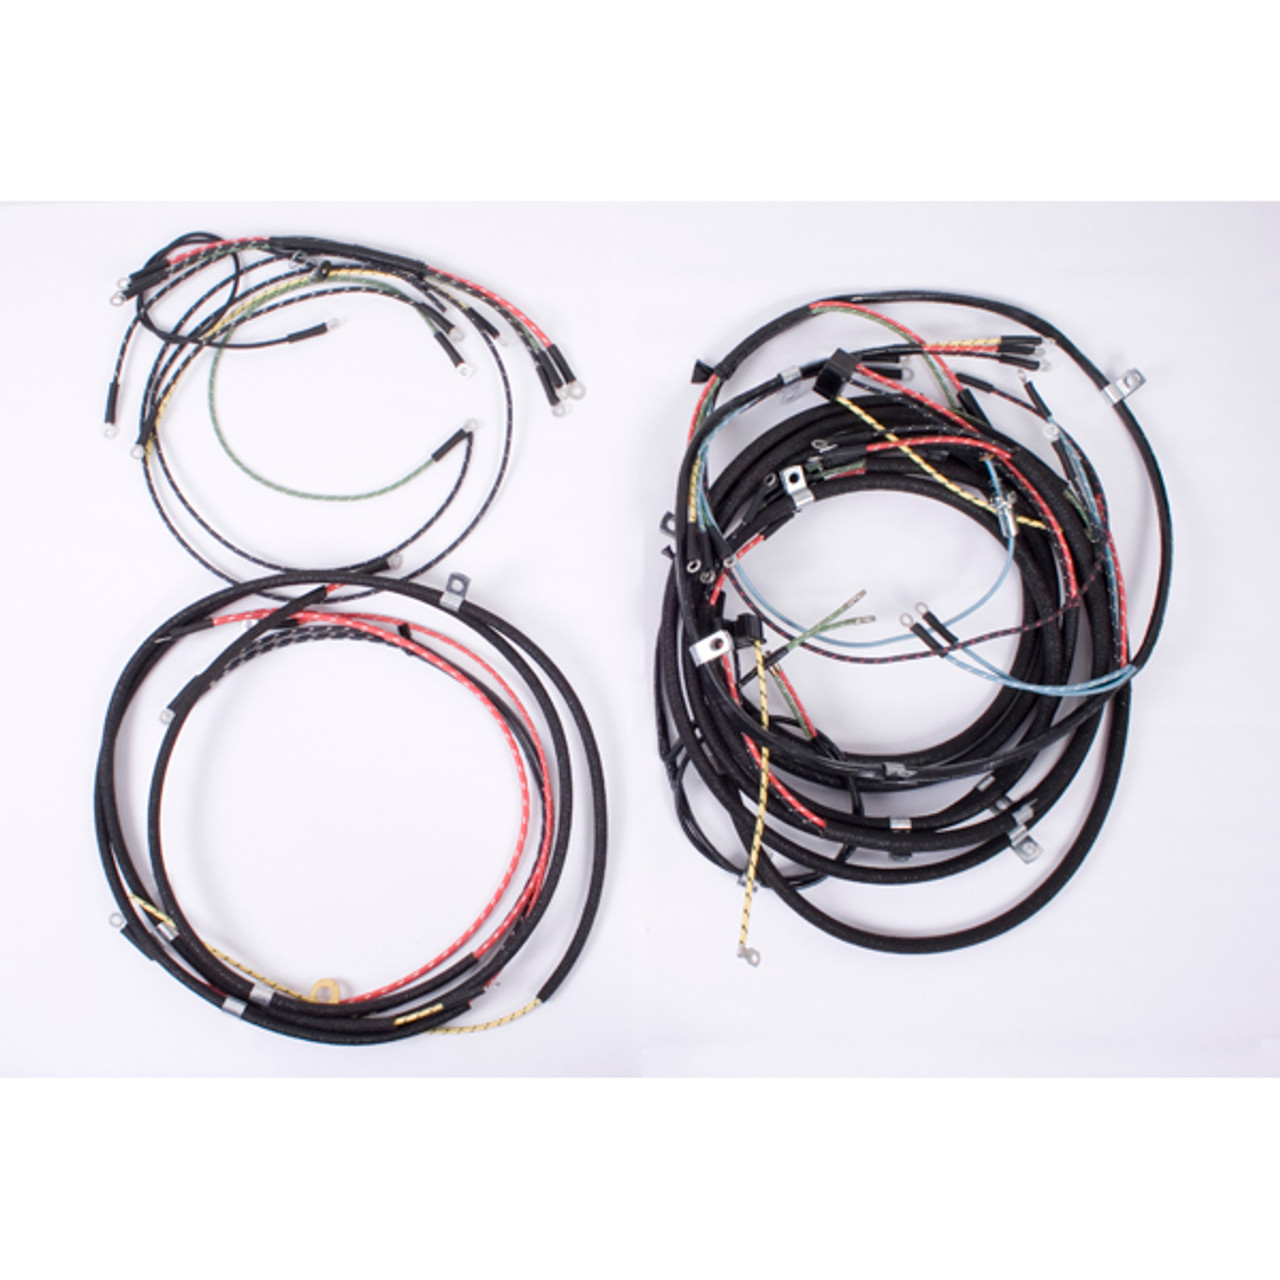 omix-ada, 17201.03 - wiring harness, 46-49 willys cj2a - available at the  jeephut  jeephut